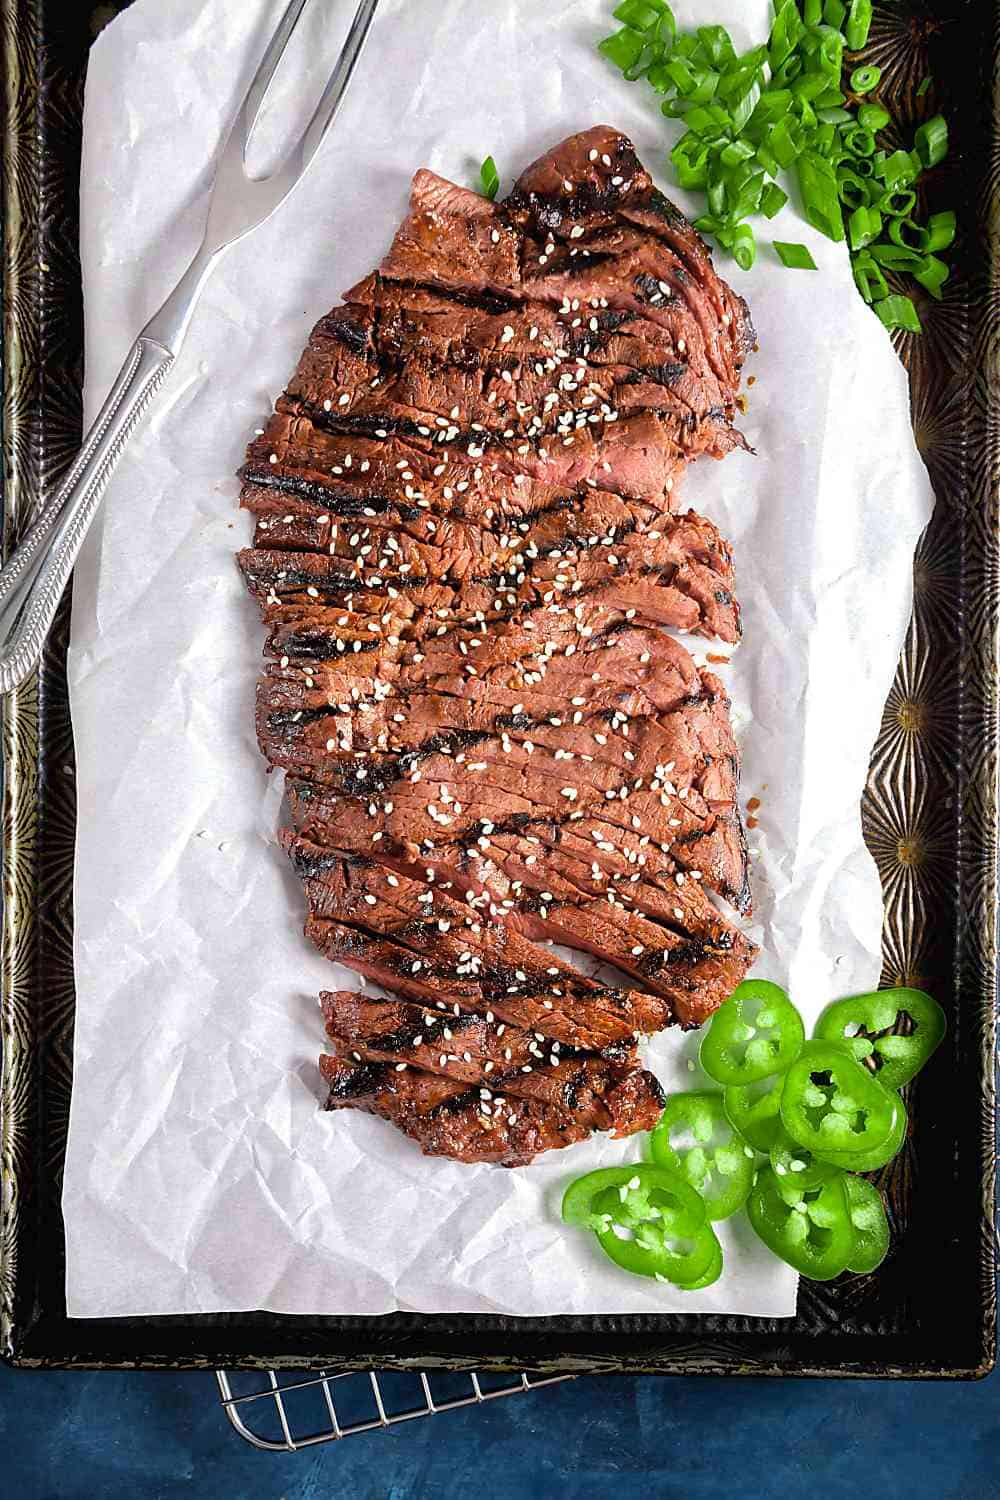 Grill Flat Iron Steak with Scallions and Jalapenos